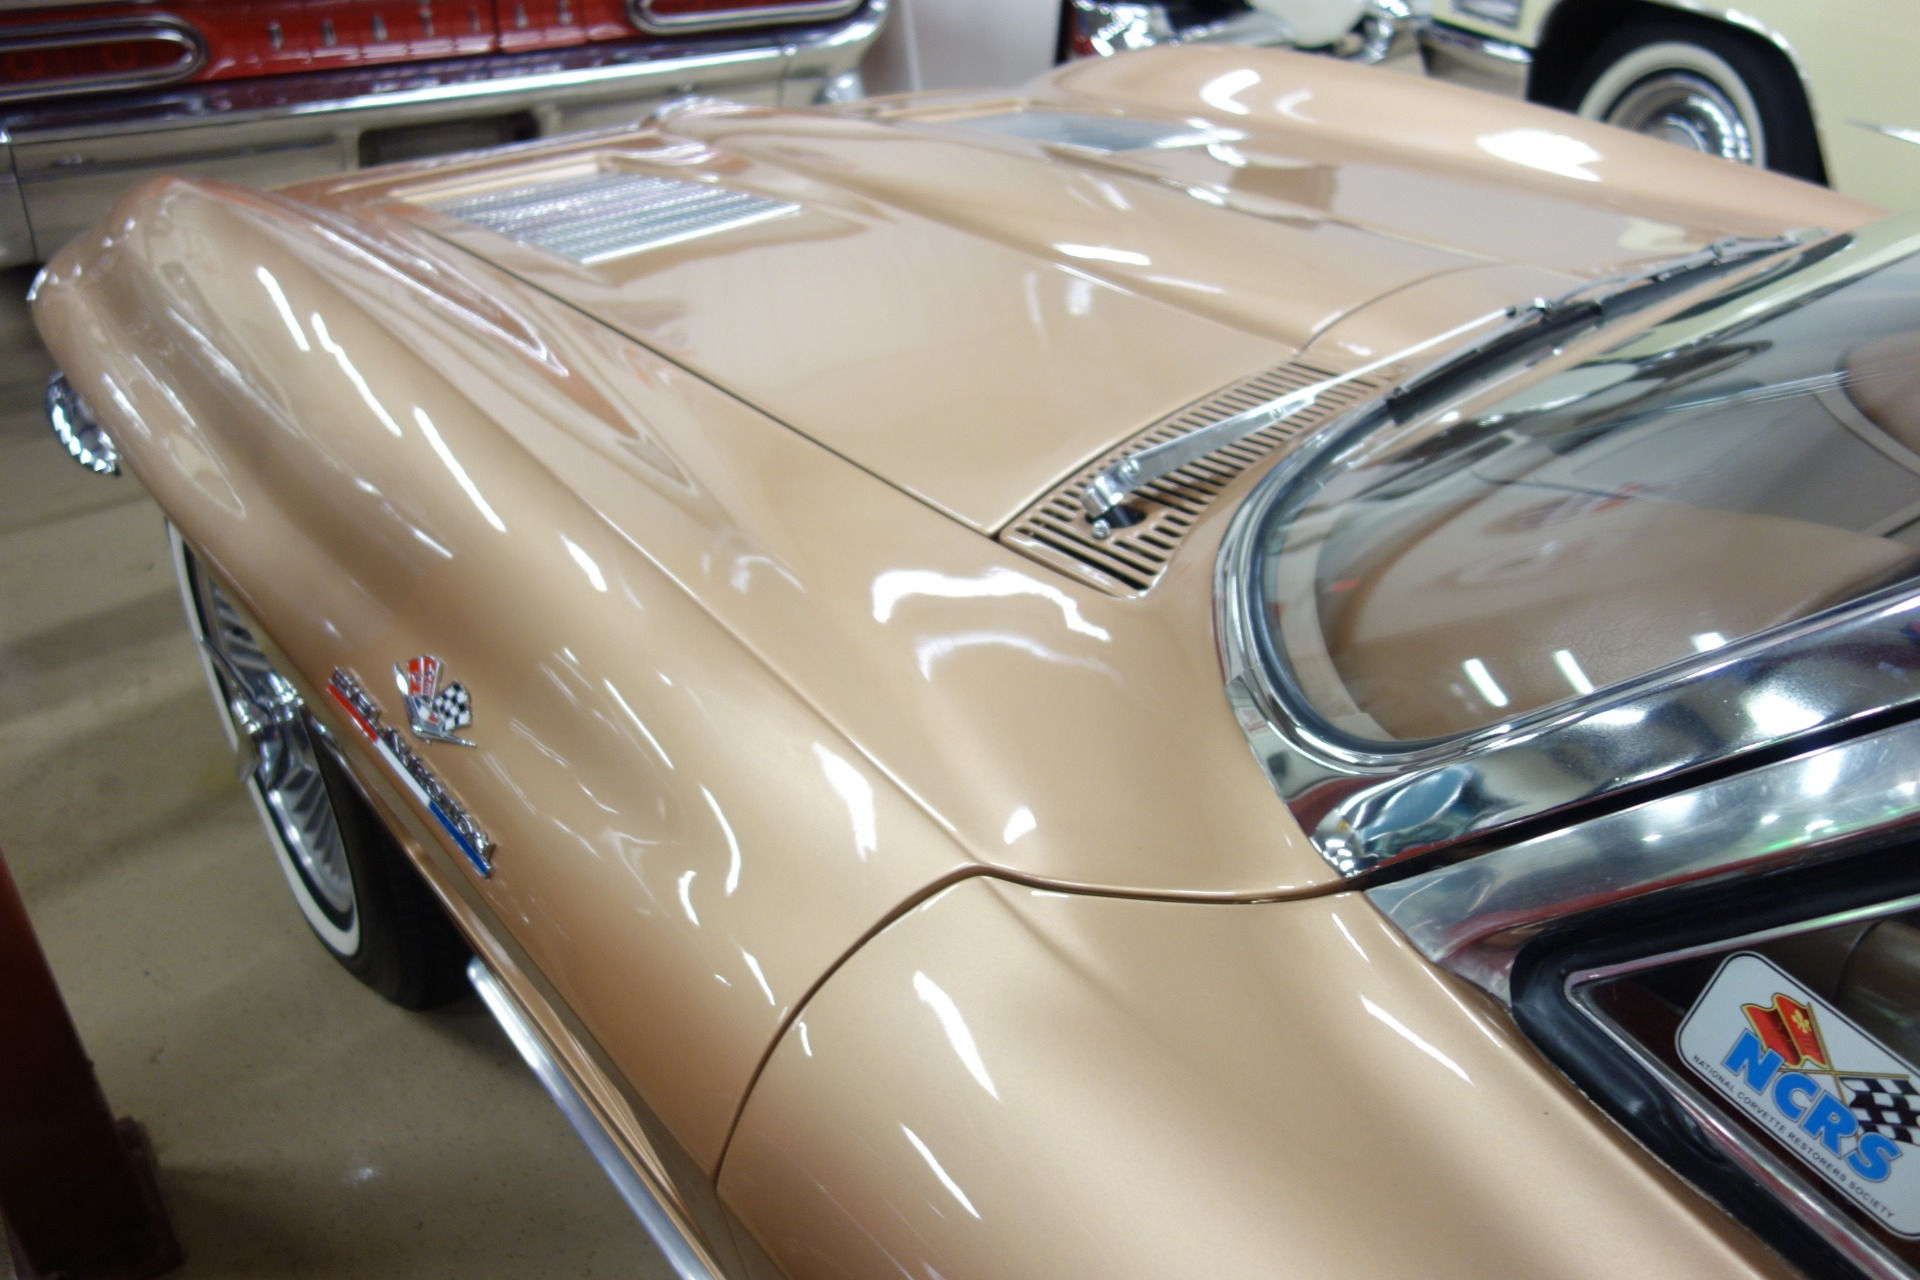 Used 1963 Chevrolet Corvette -SPLIT WINDOW FUELIE - NCRS TOP FLIGHT WINNER - | Mundelein, IL